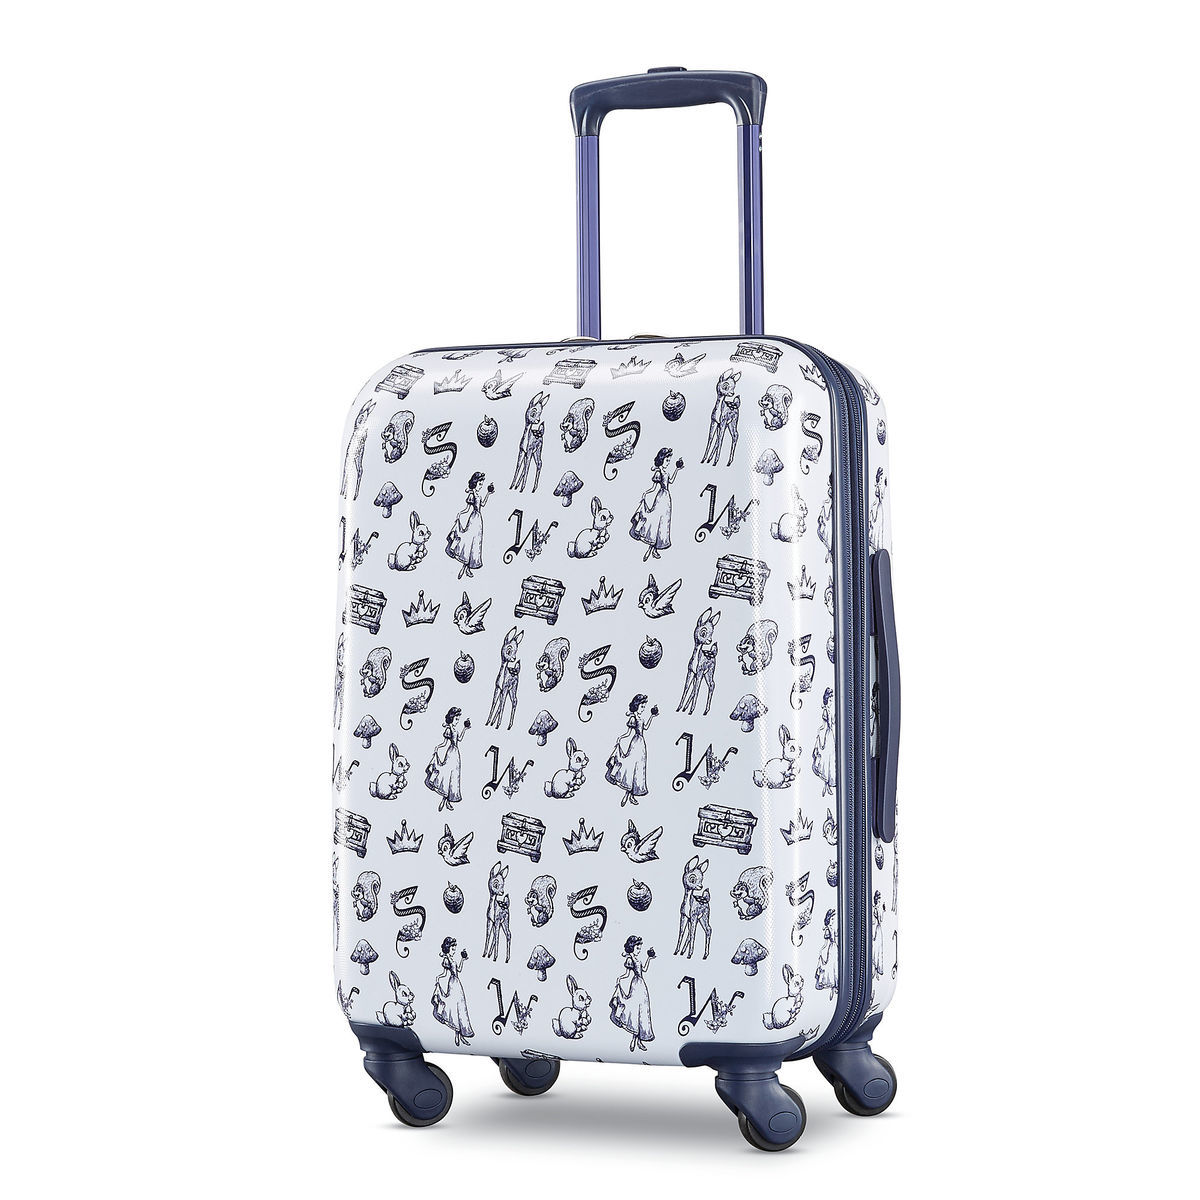 By Snow Small American Luggage Shopdisney Tourister Rolling White qTTrtp